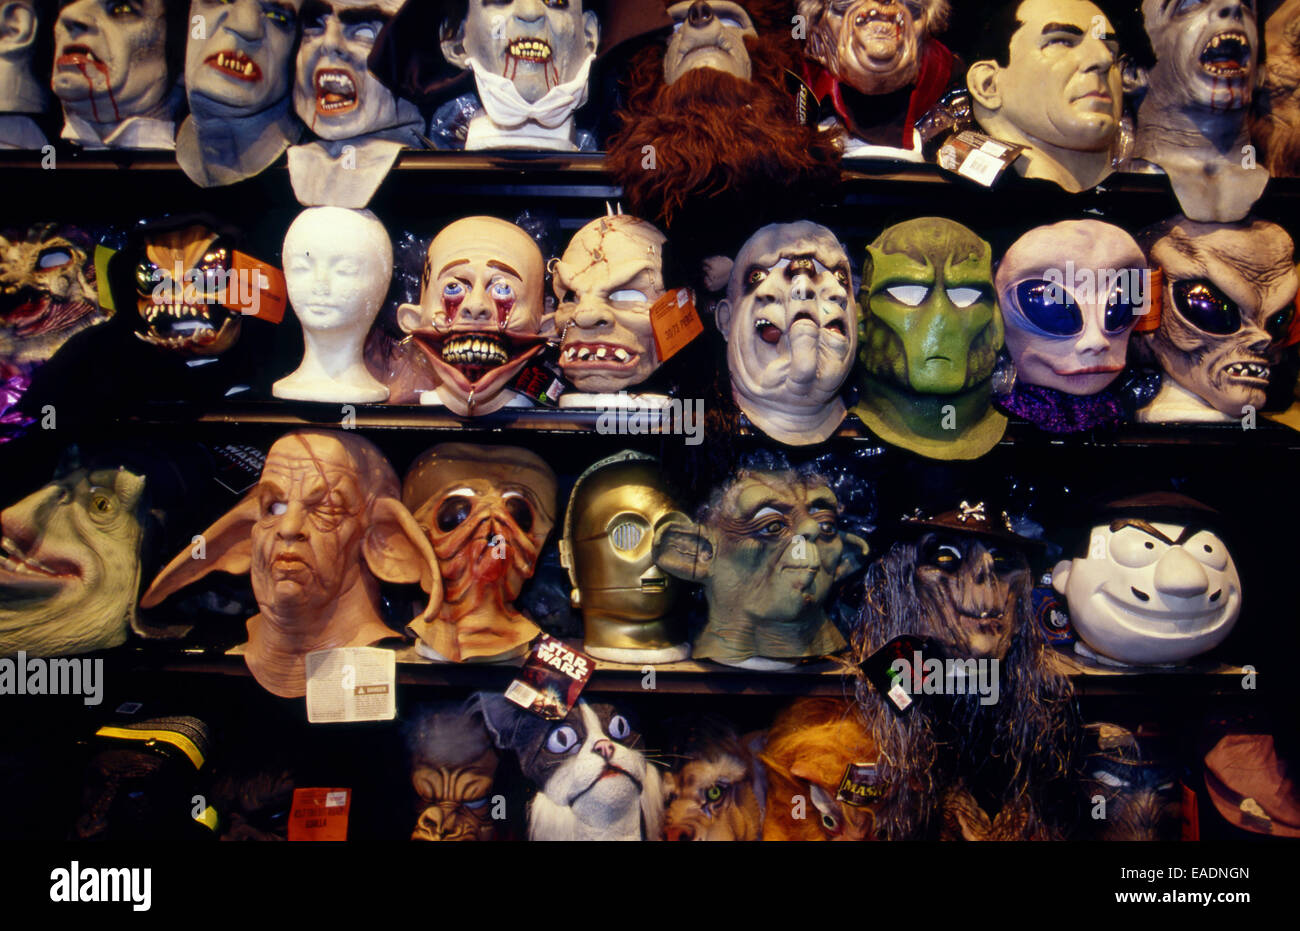 Halloween masks on display Stock Photo, Royalty Free Image ...